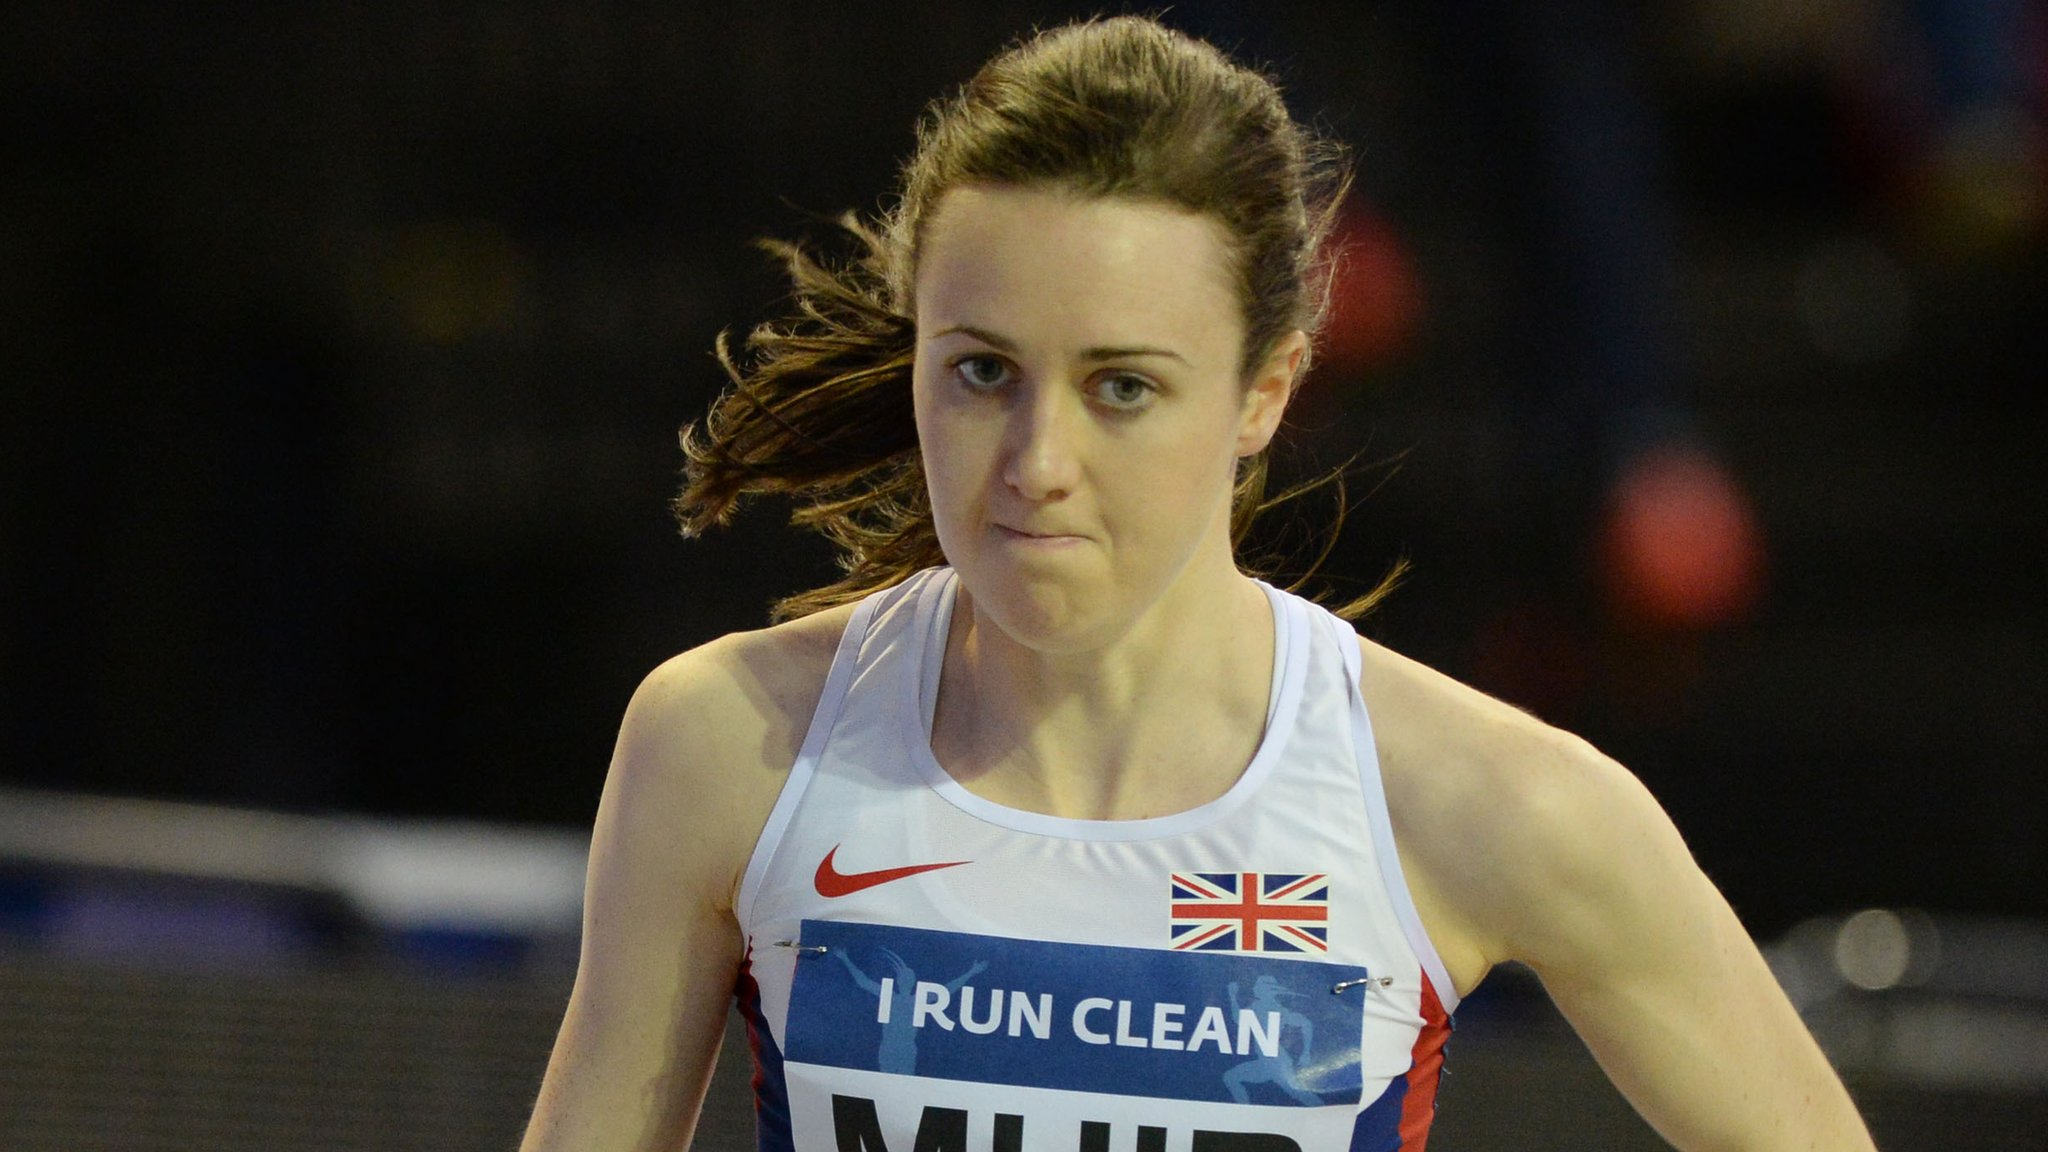 'Just so big for me' - Muir seeks double gold in Glasgow